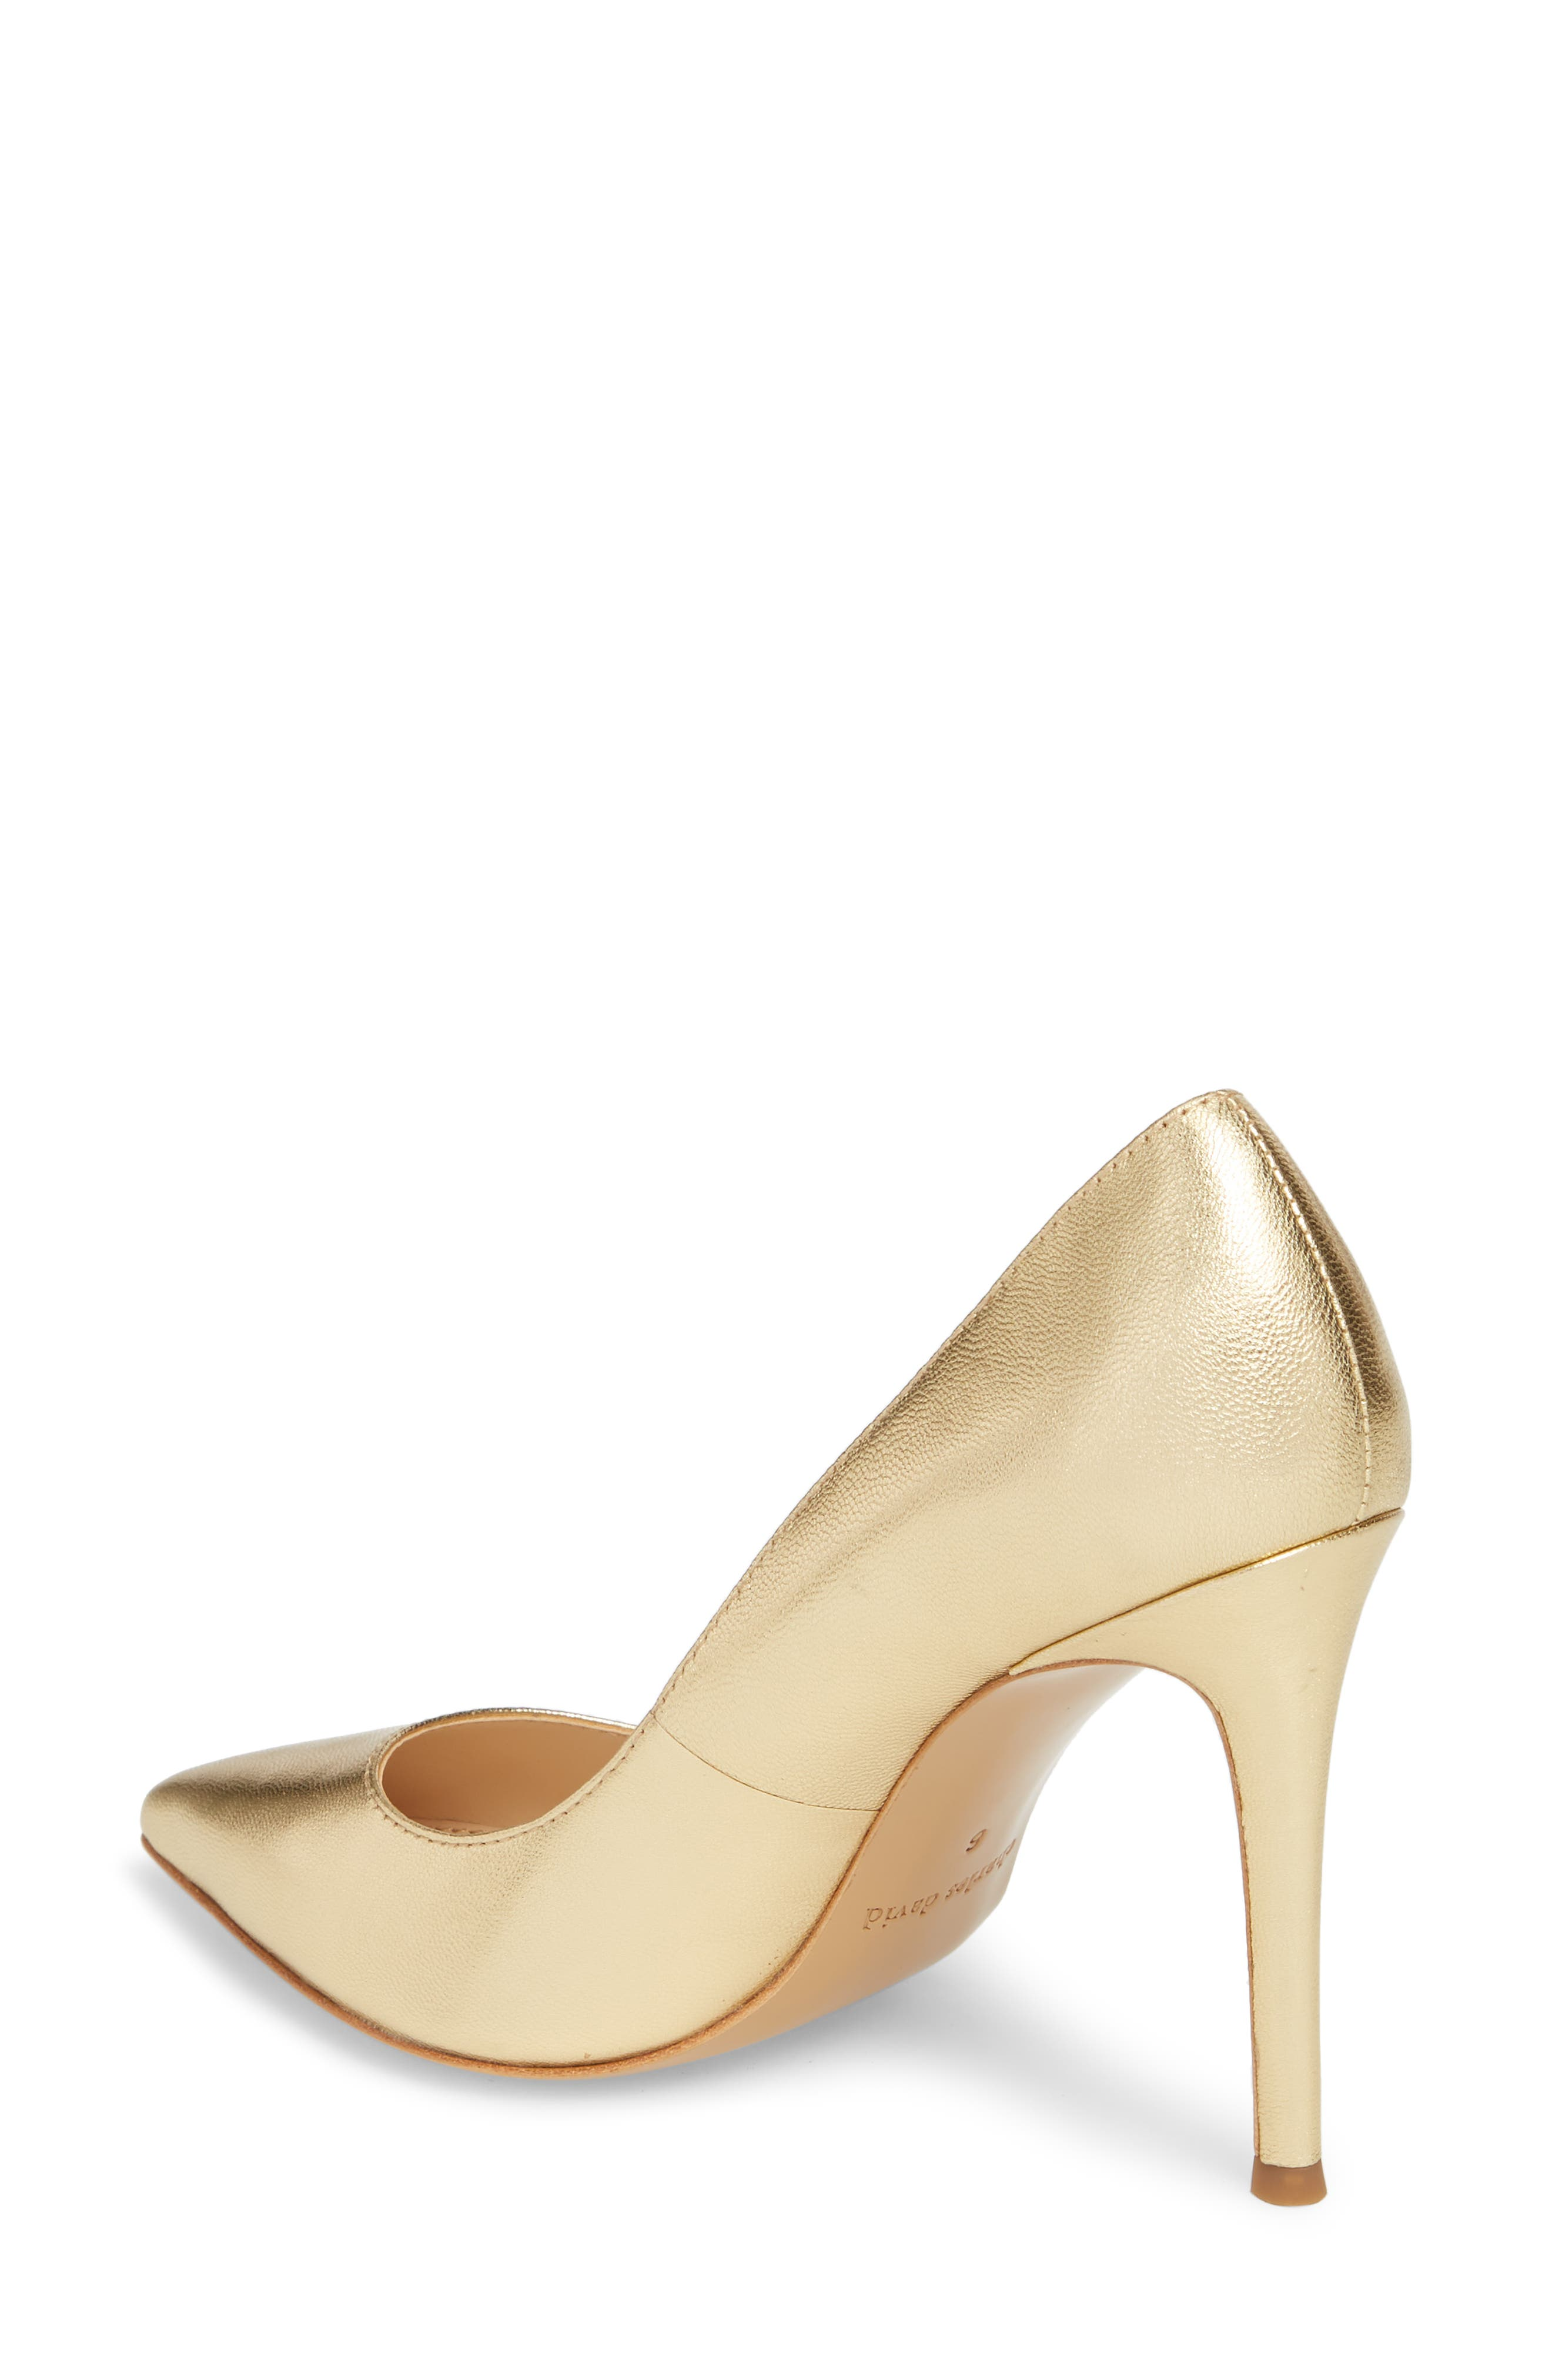 CHARLES DAVID, Calessi Pointy Toe Pump, Alternate thumbnail 2, color, GOLD LEATHER